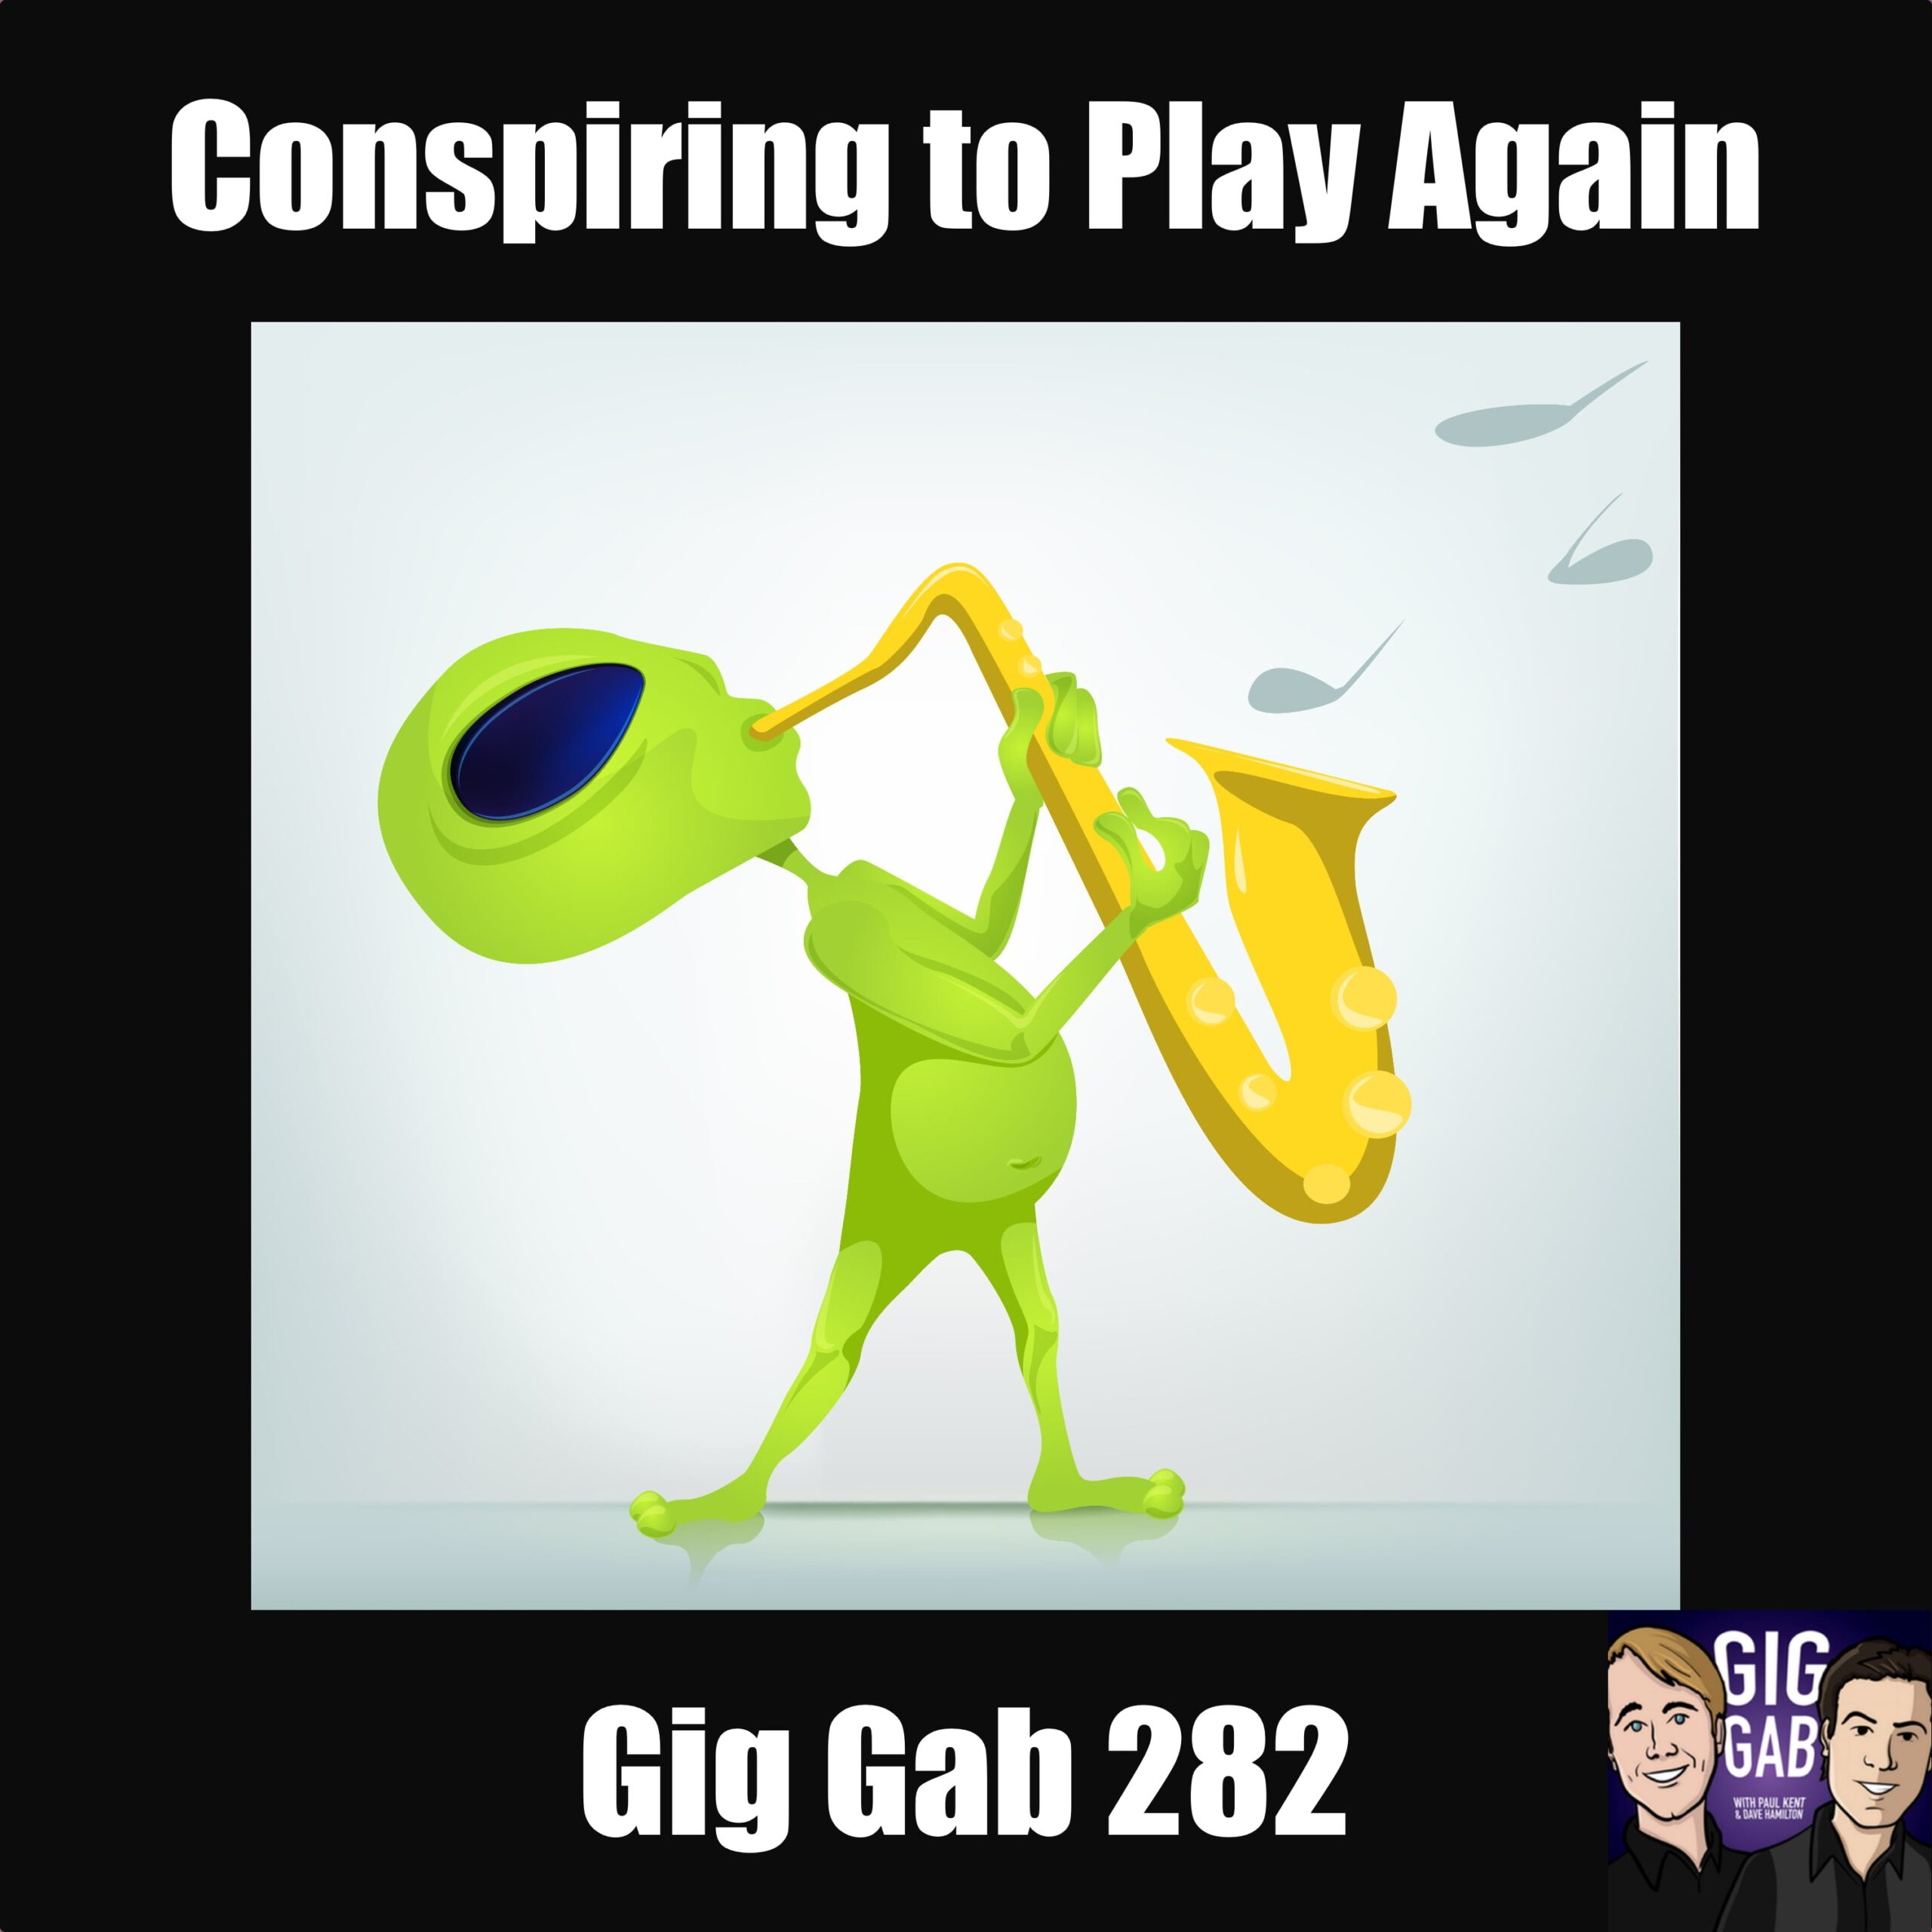 Musical Conspiracy Gig Gab 282 Episode Image with Alien on saxophone